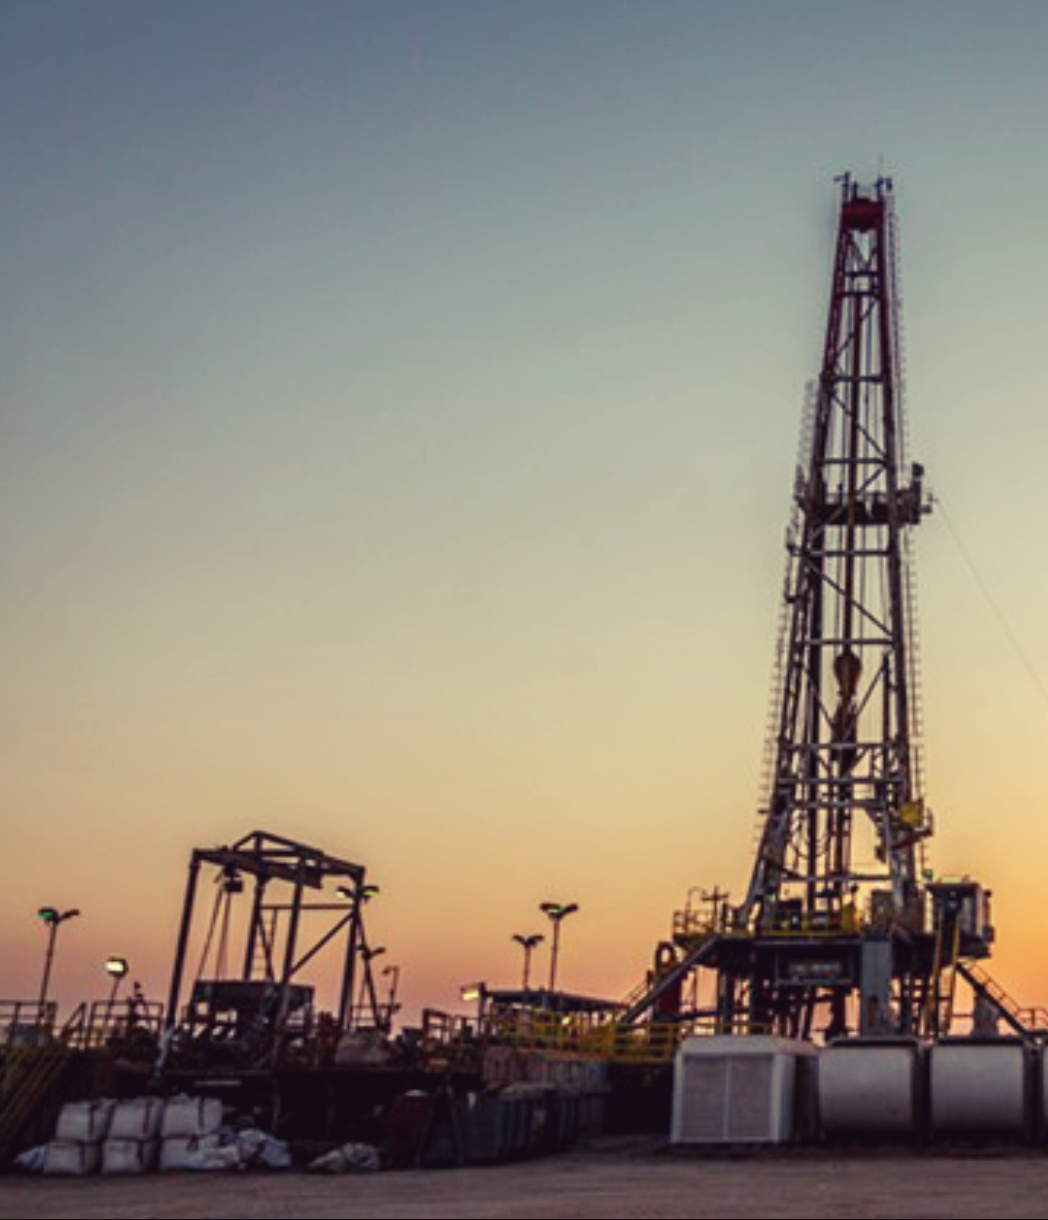 Oil Drilling Rig & Equipment Photo At Dusk